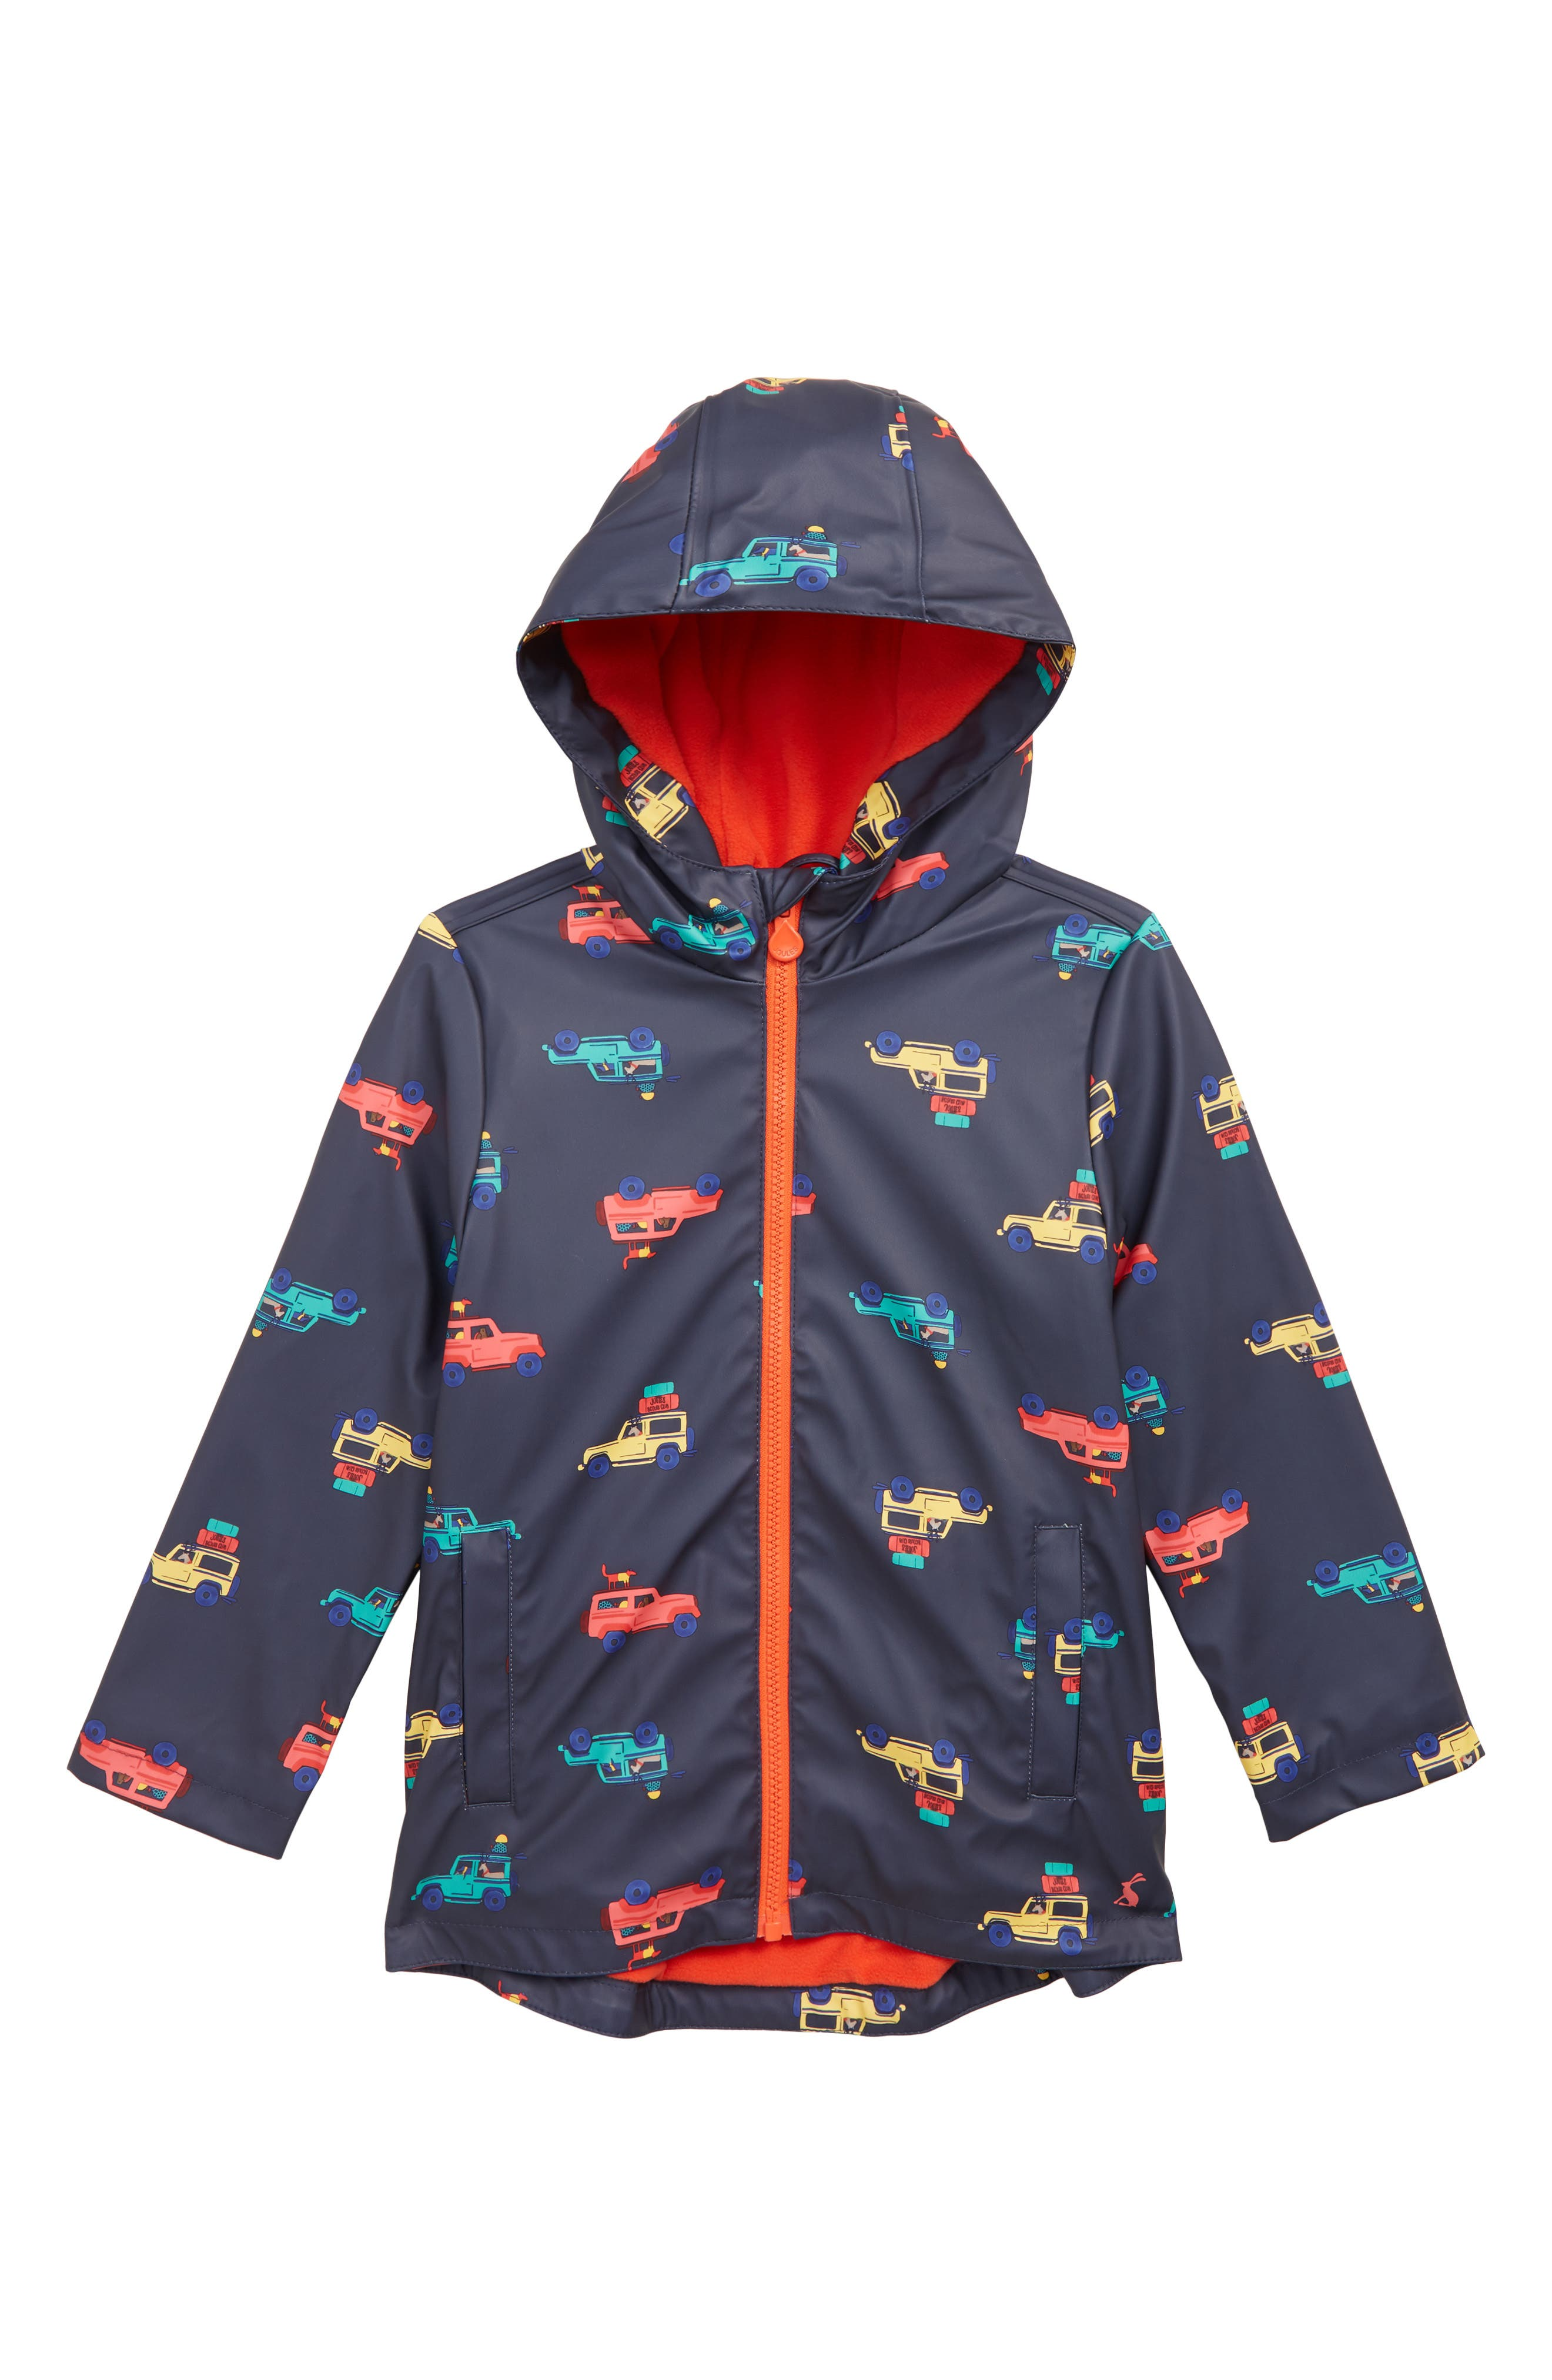 Toddler Boys Joules Waterproof Rubber Coat Size 3Y  Blue